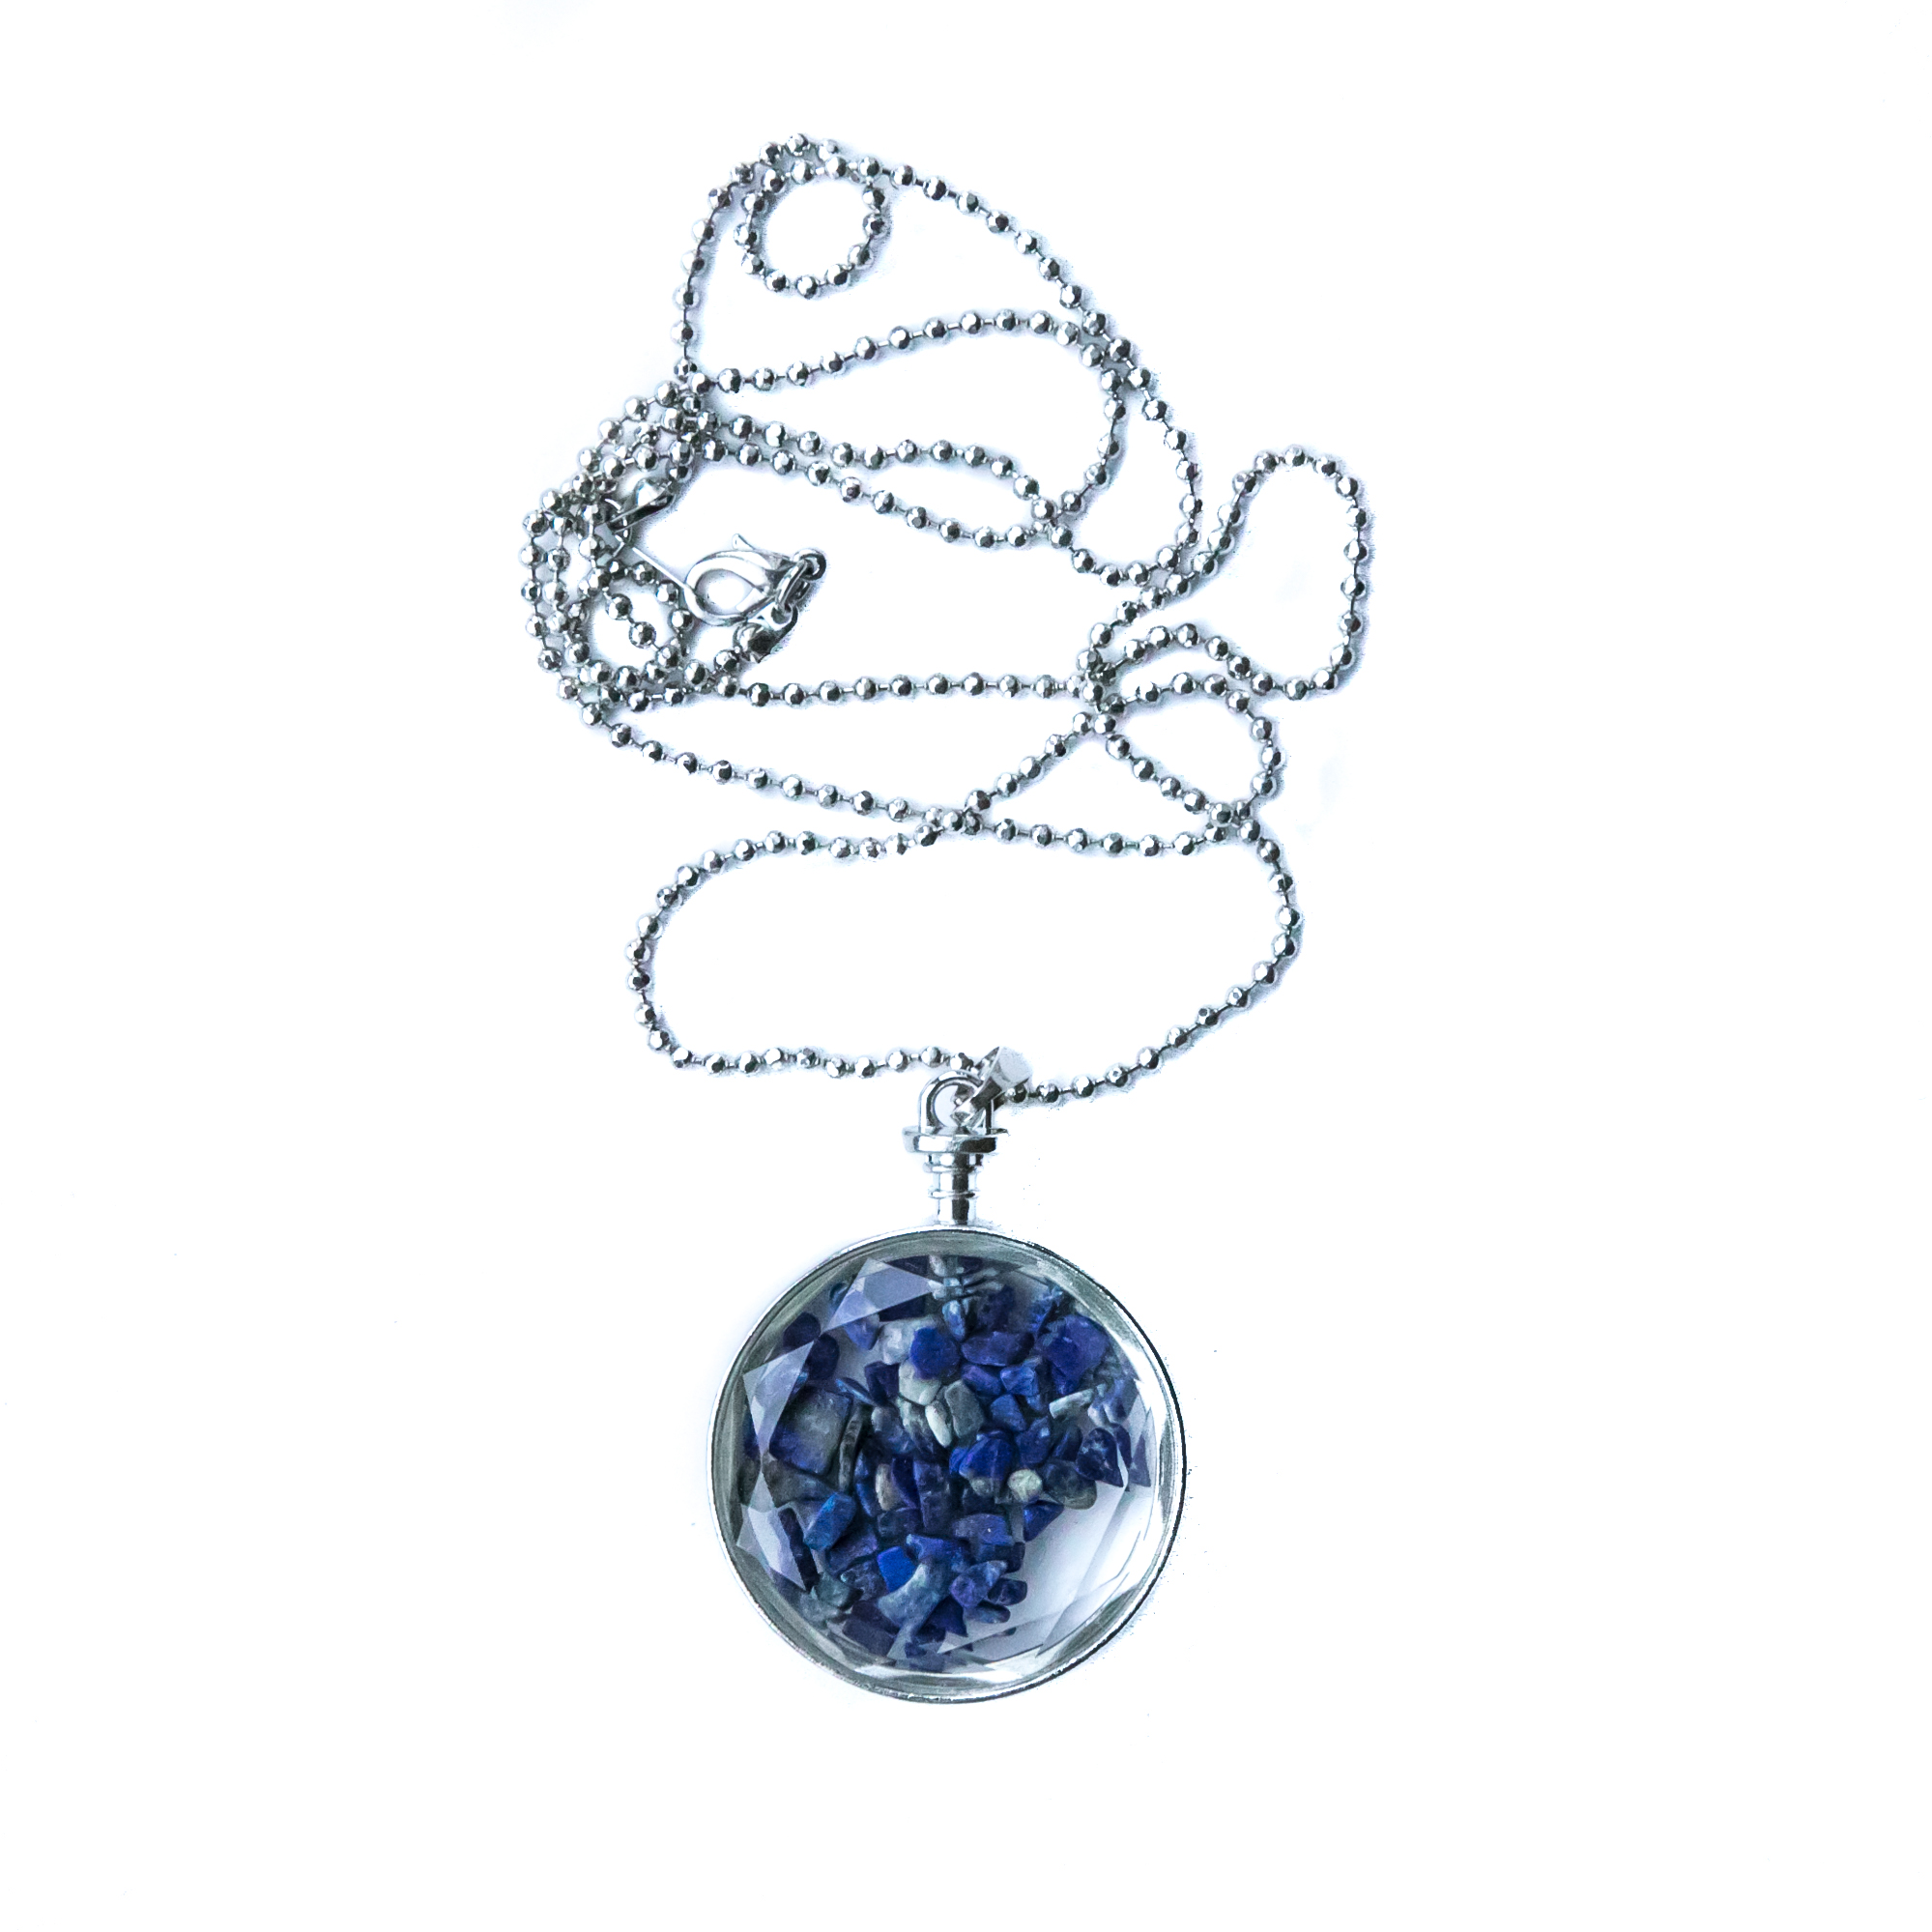 Blue Lapis Lazuli  option on sparkling Silver Chain: $90